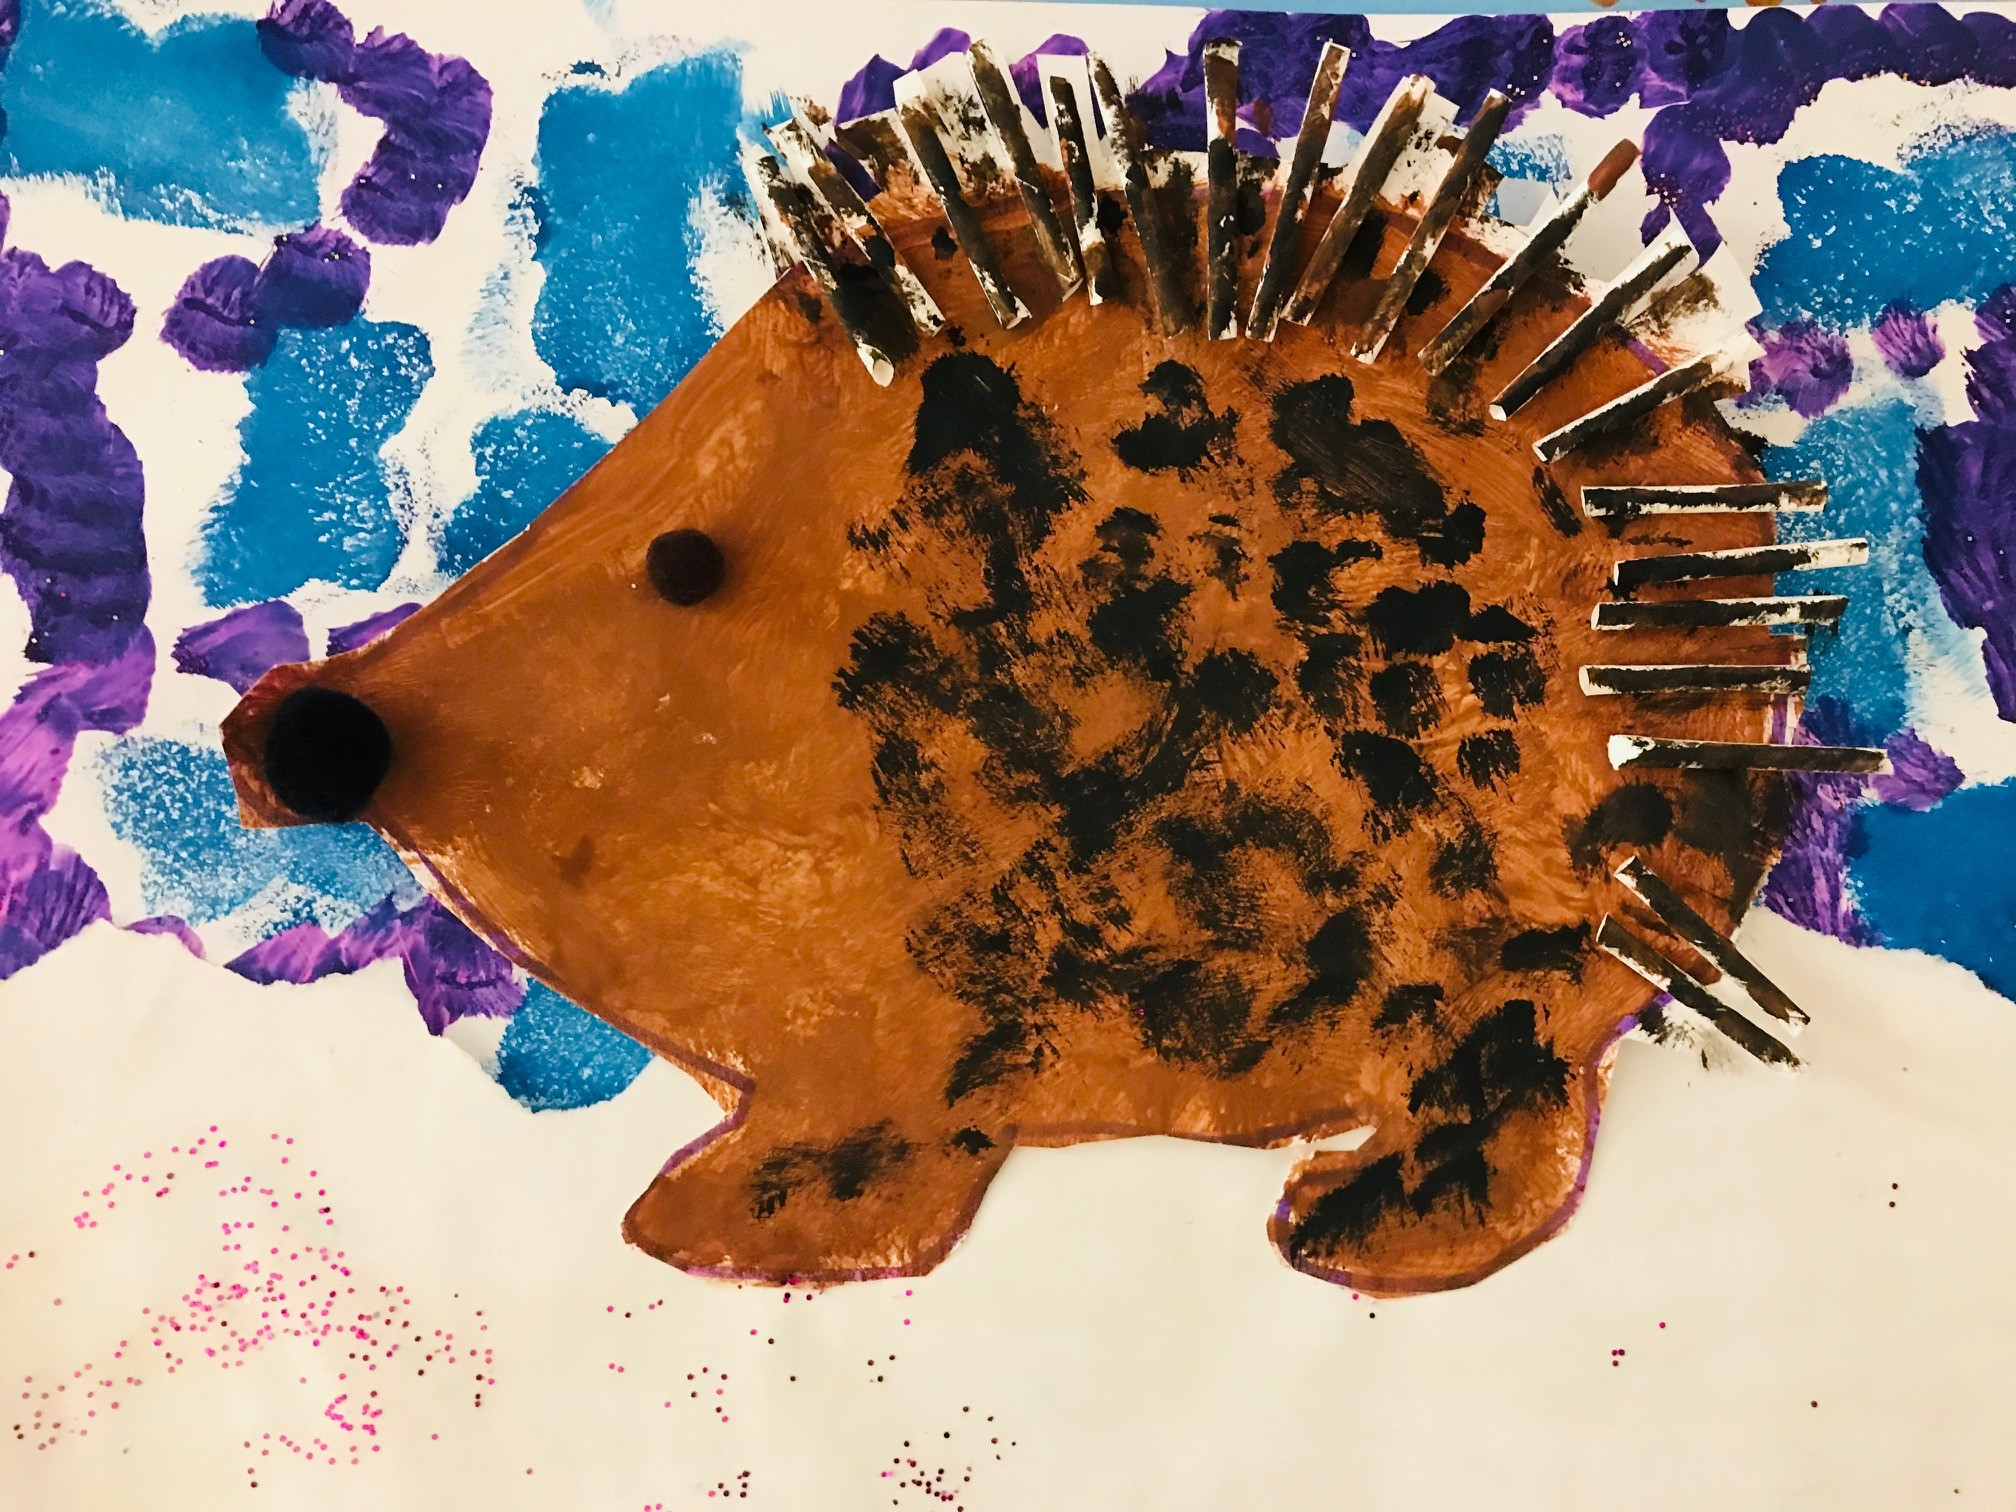 39.-Tracy-Zerwas_Brighton-North-Elementary_Tinsley-Wyatt_Grade-2-Painted-Paper-Art-Straws-Printing-Embellishments-Glitter-Collage